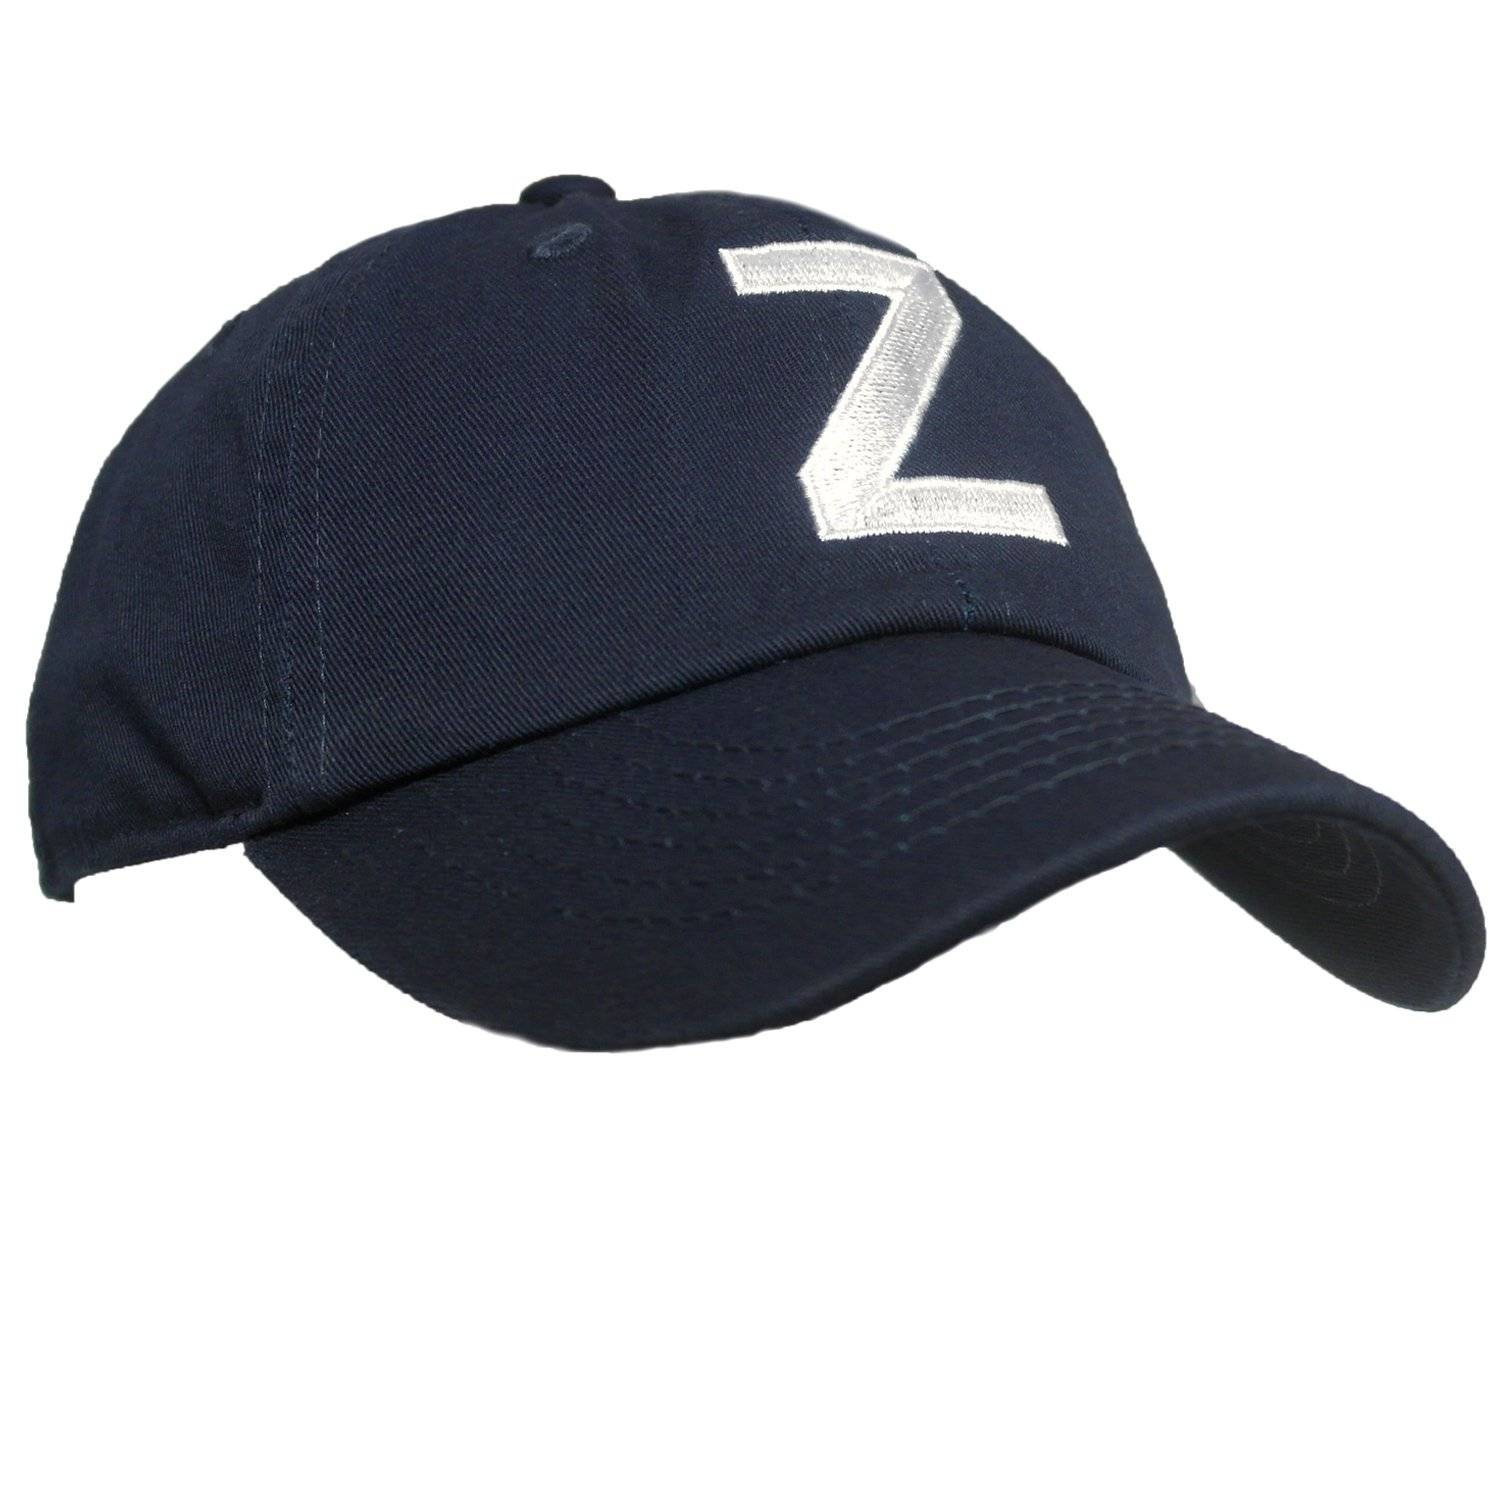 Tiny Expressions Toddler Boys' and Girls' Navy Embroidered Initial Baseball Hat Monogrammed Cap (Z, 2-6yrs)